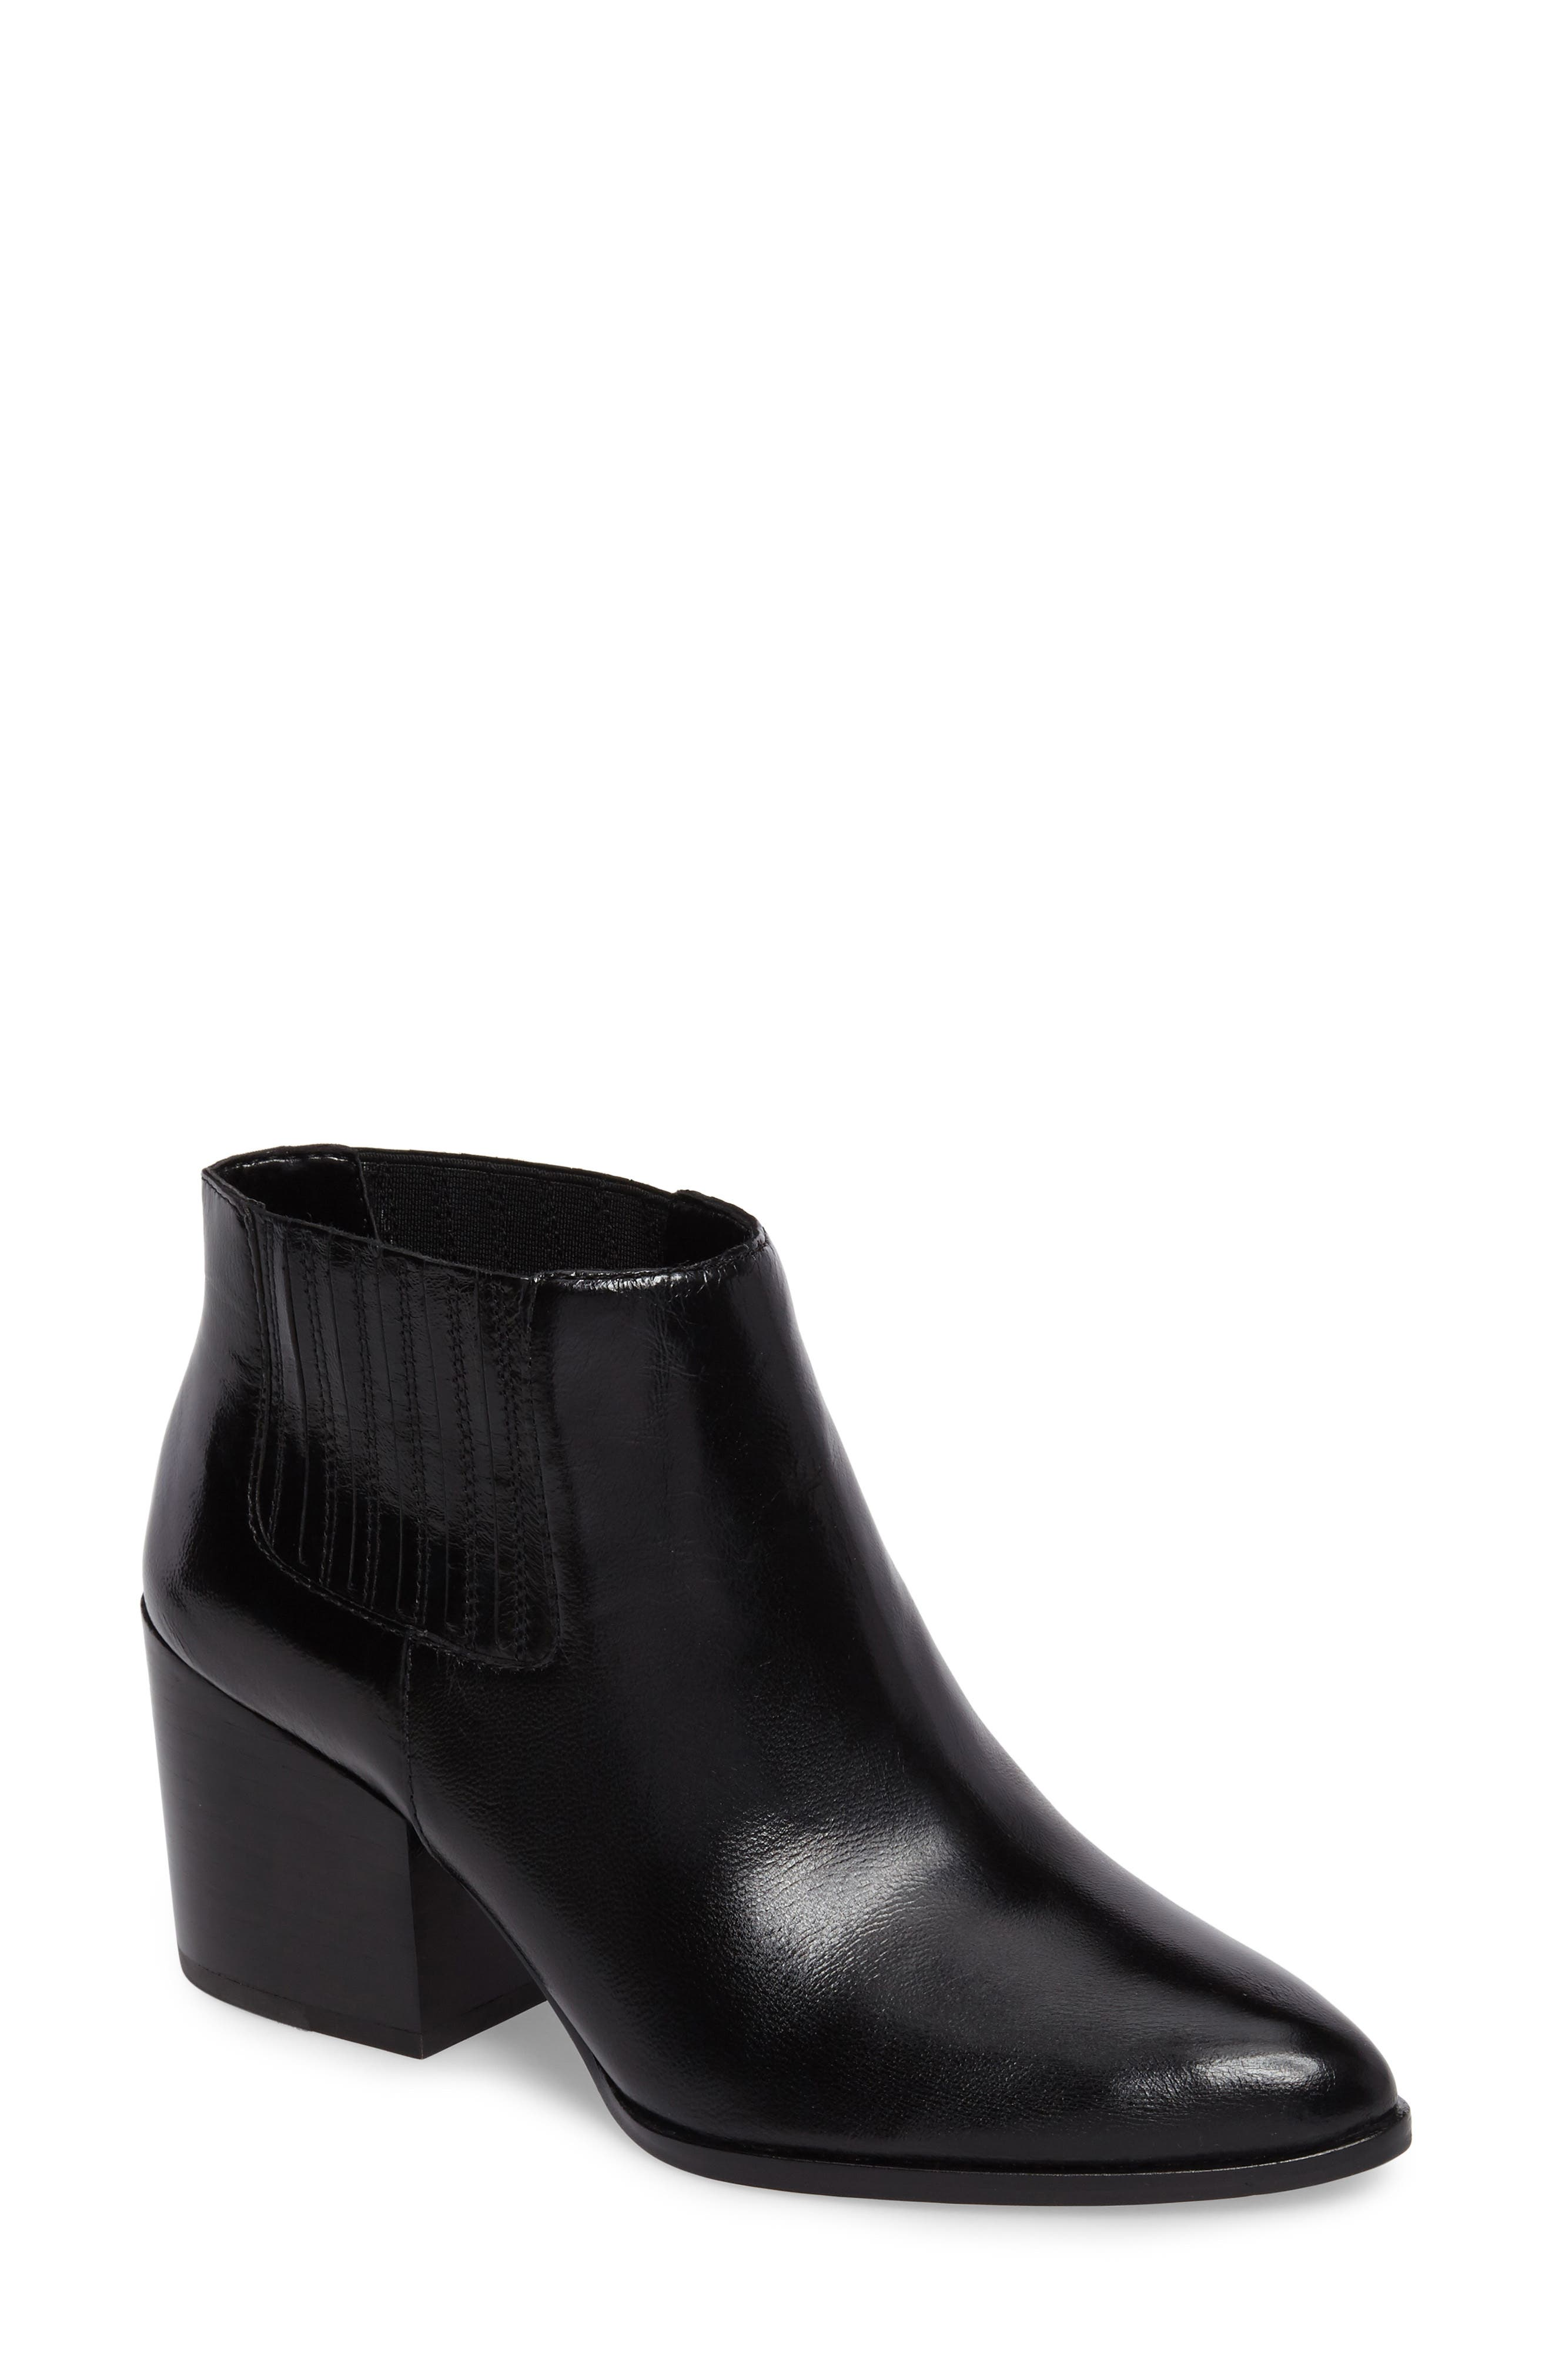 Jemore Boot,                         Main,                         color, Black Leather